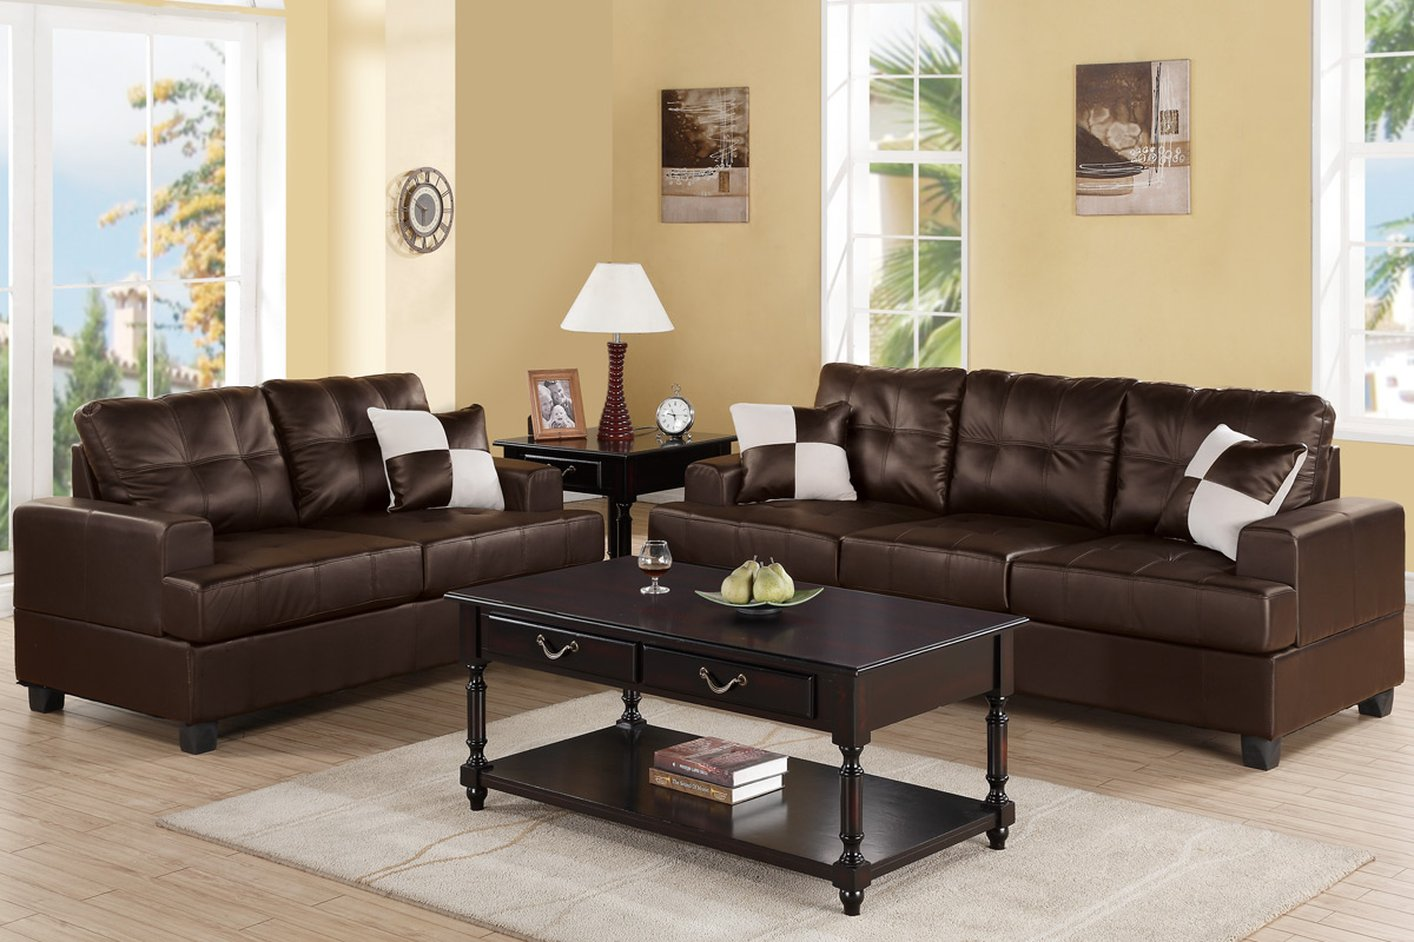 Poundex Kyler F7577 Brown Leather Sofa And Loveseat Set Steal A Sofa Furniture Outlet Los